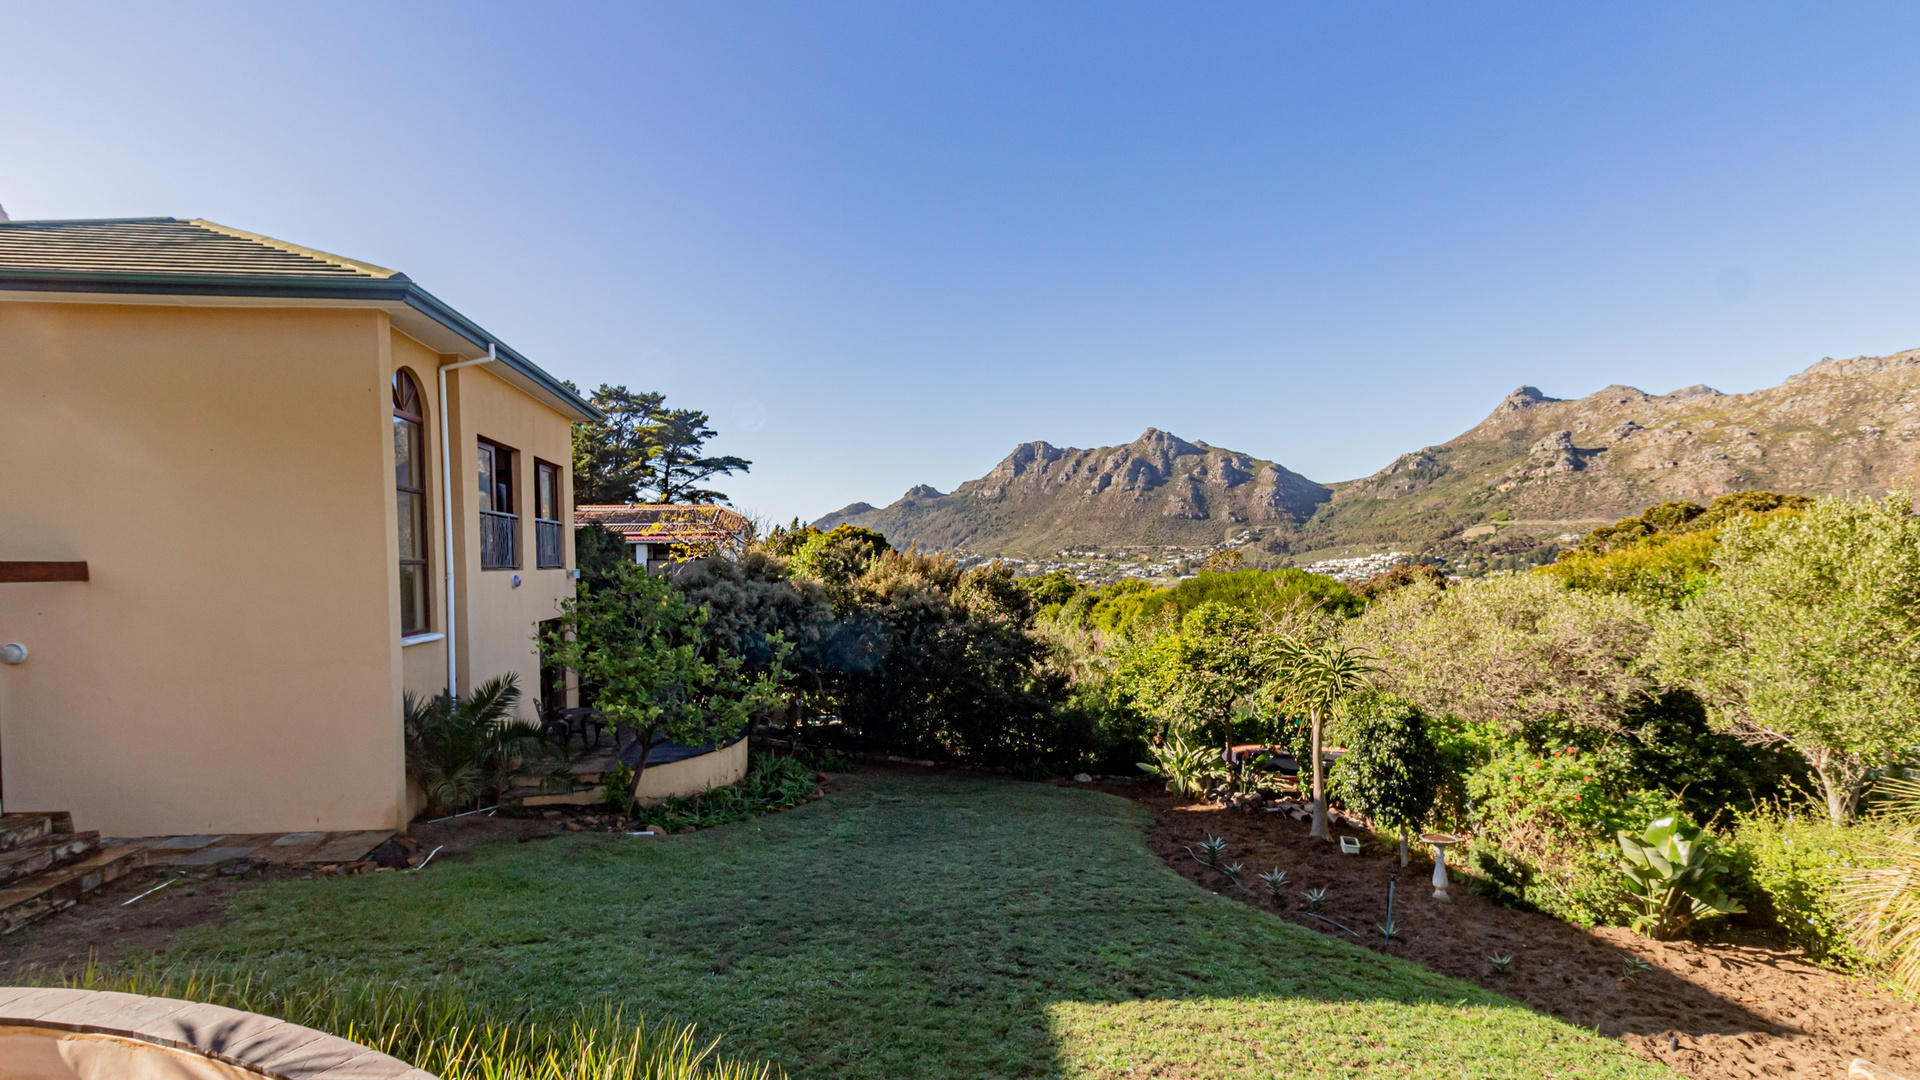 House in Hout Bay - Image-034.jpg